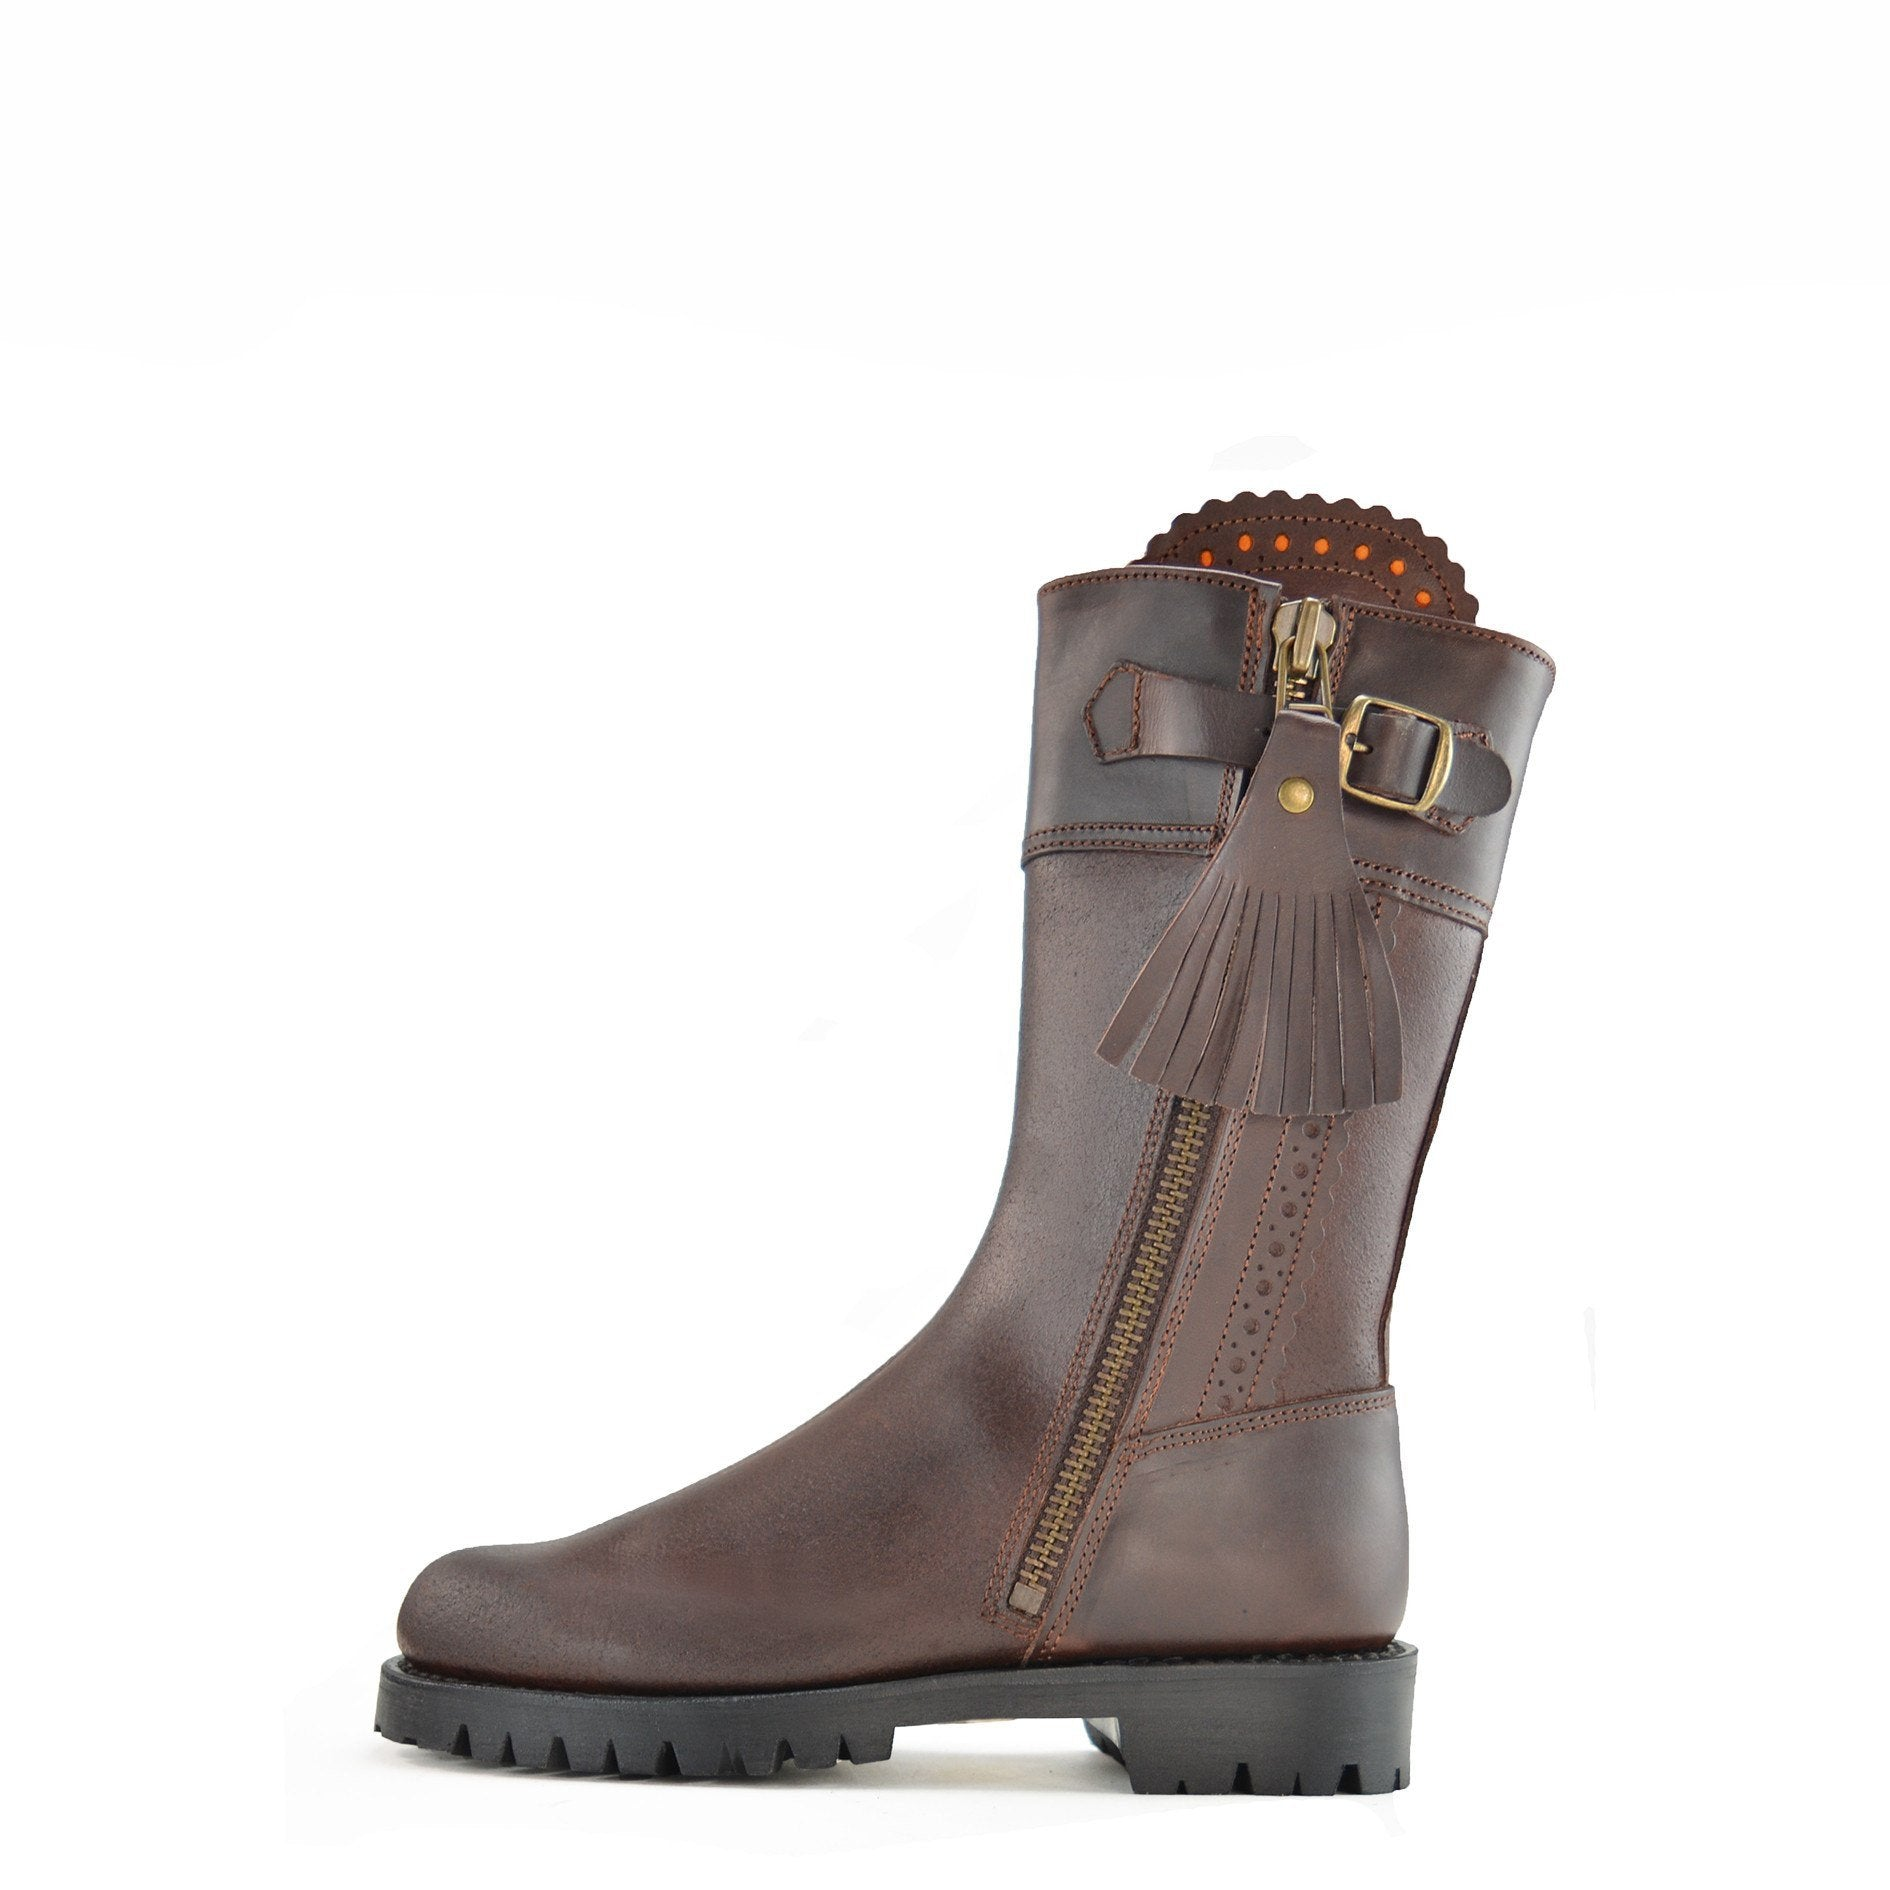 Dukes Boots Fenn 28 Inch Boot for Ladies in Brown